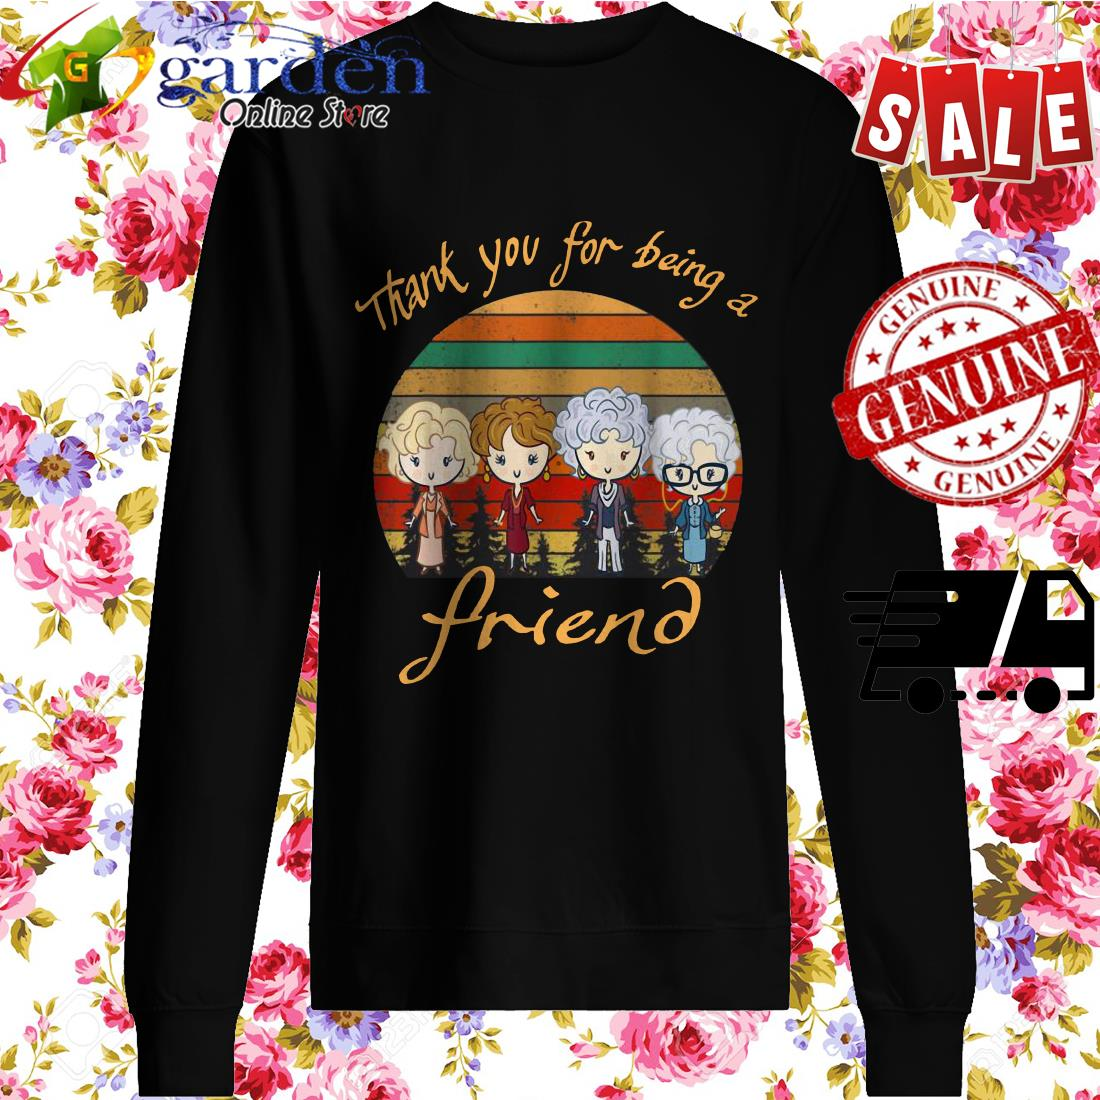 Thank You For Being A Friend The Golden Girls Vintage sweater